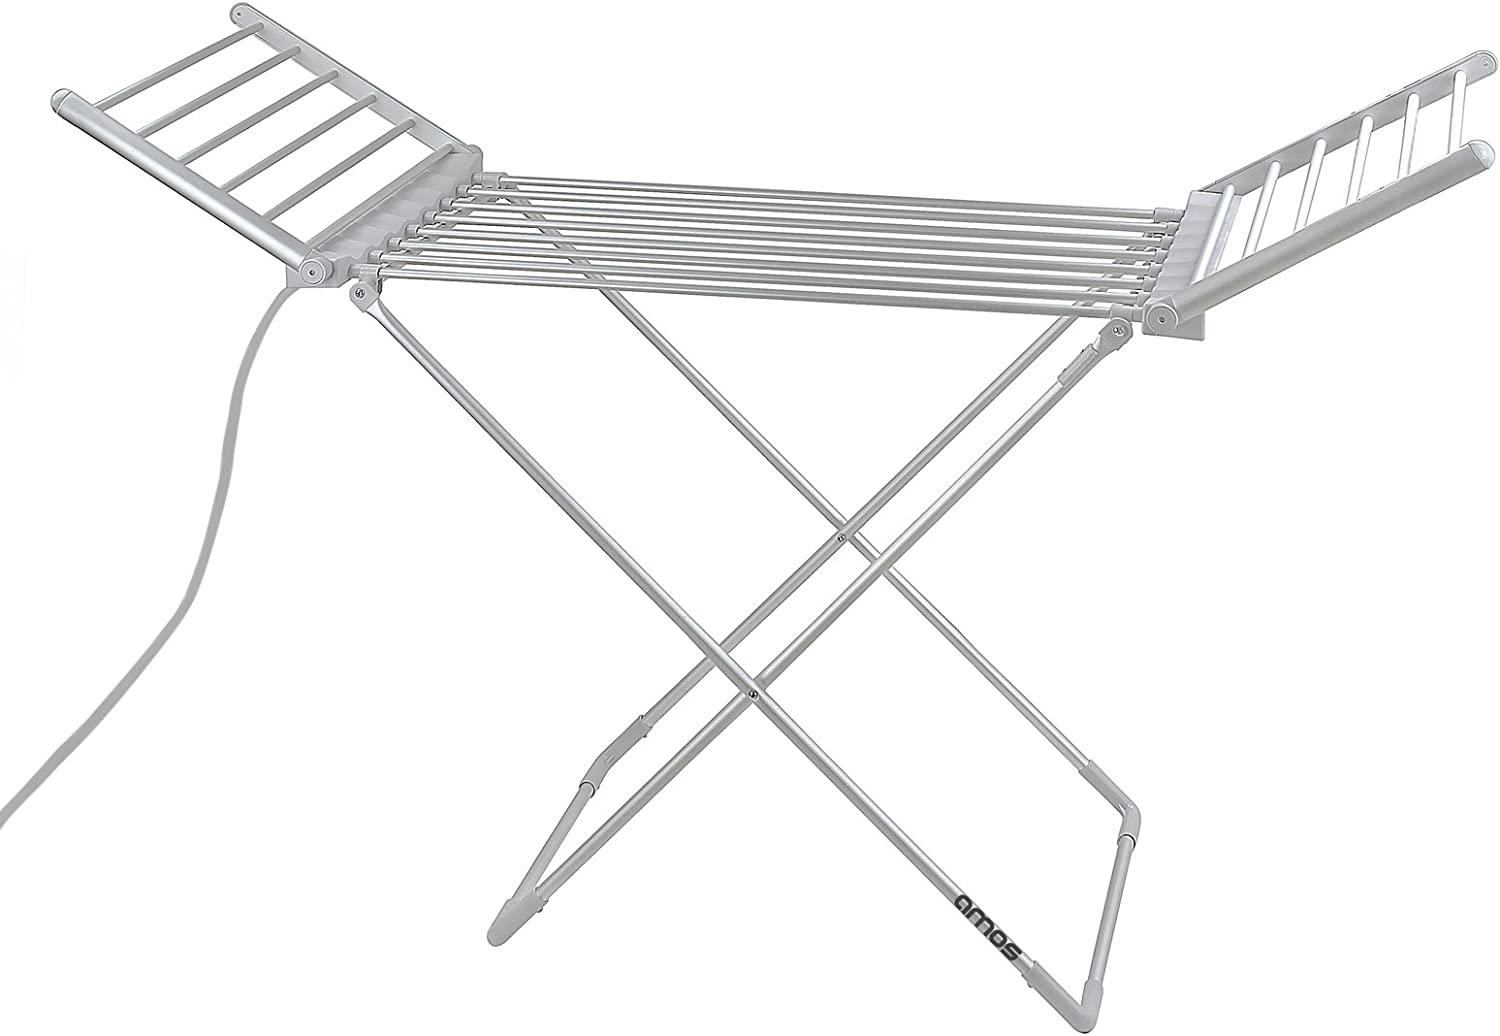 AMOS 230 Electric Heated Clothes Dryer Folding Energy-Efficient Indoor Airer Wet Laundry Drying Horse Rack, white, 8